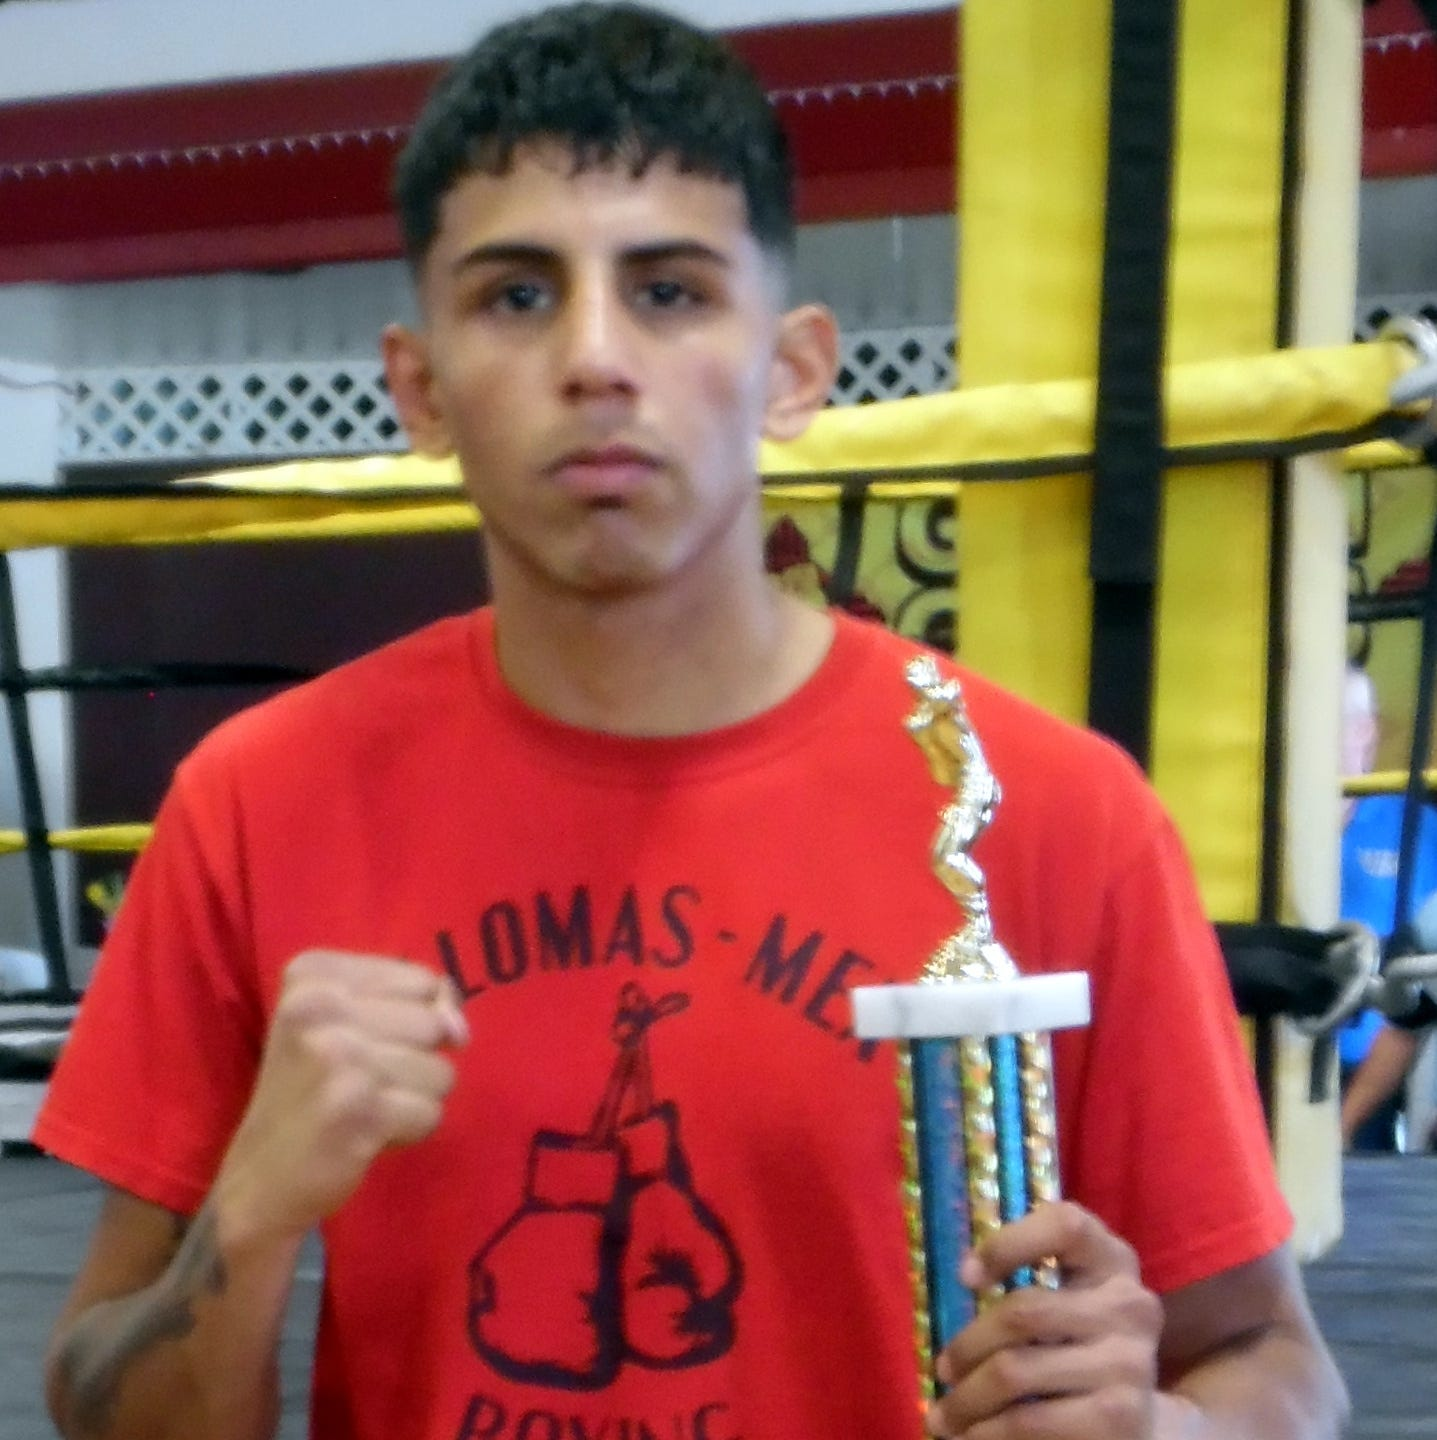 Columbus, New Mexico has a Golden Gloves boxing champion